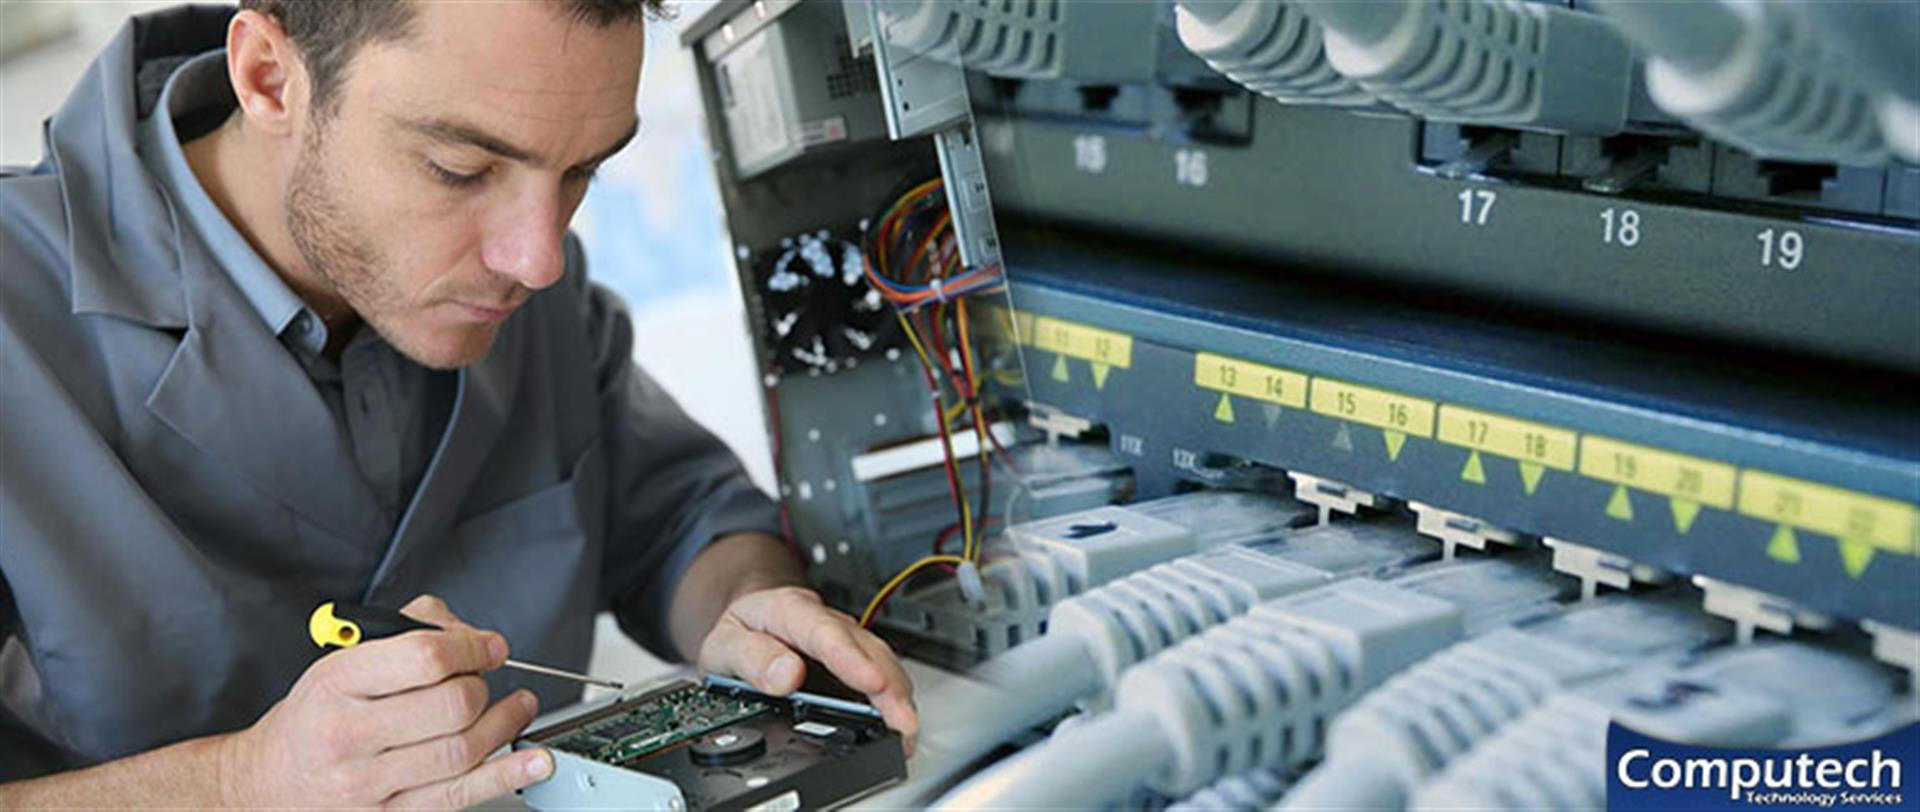 LaGrange Georgia On Site Computer & Printer Repair, Network, Voice & Data Cabling Solutions